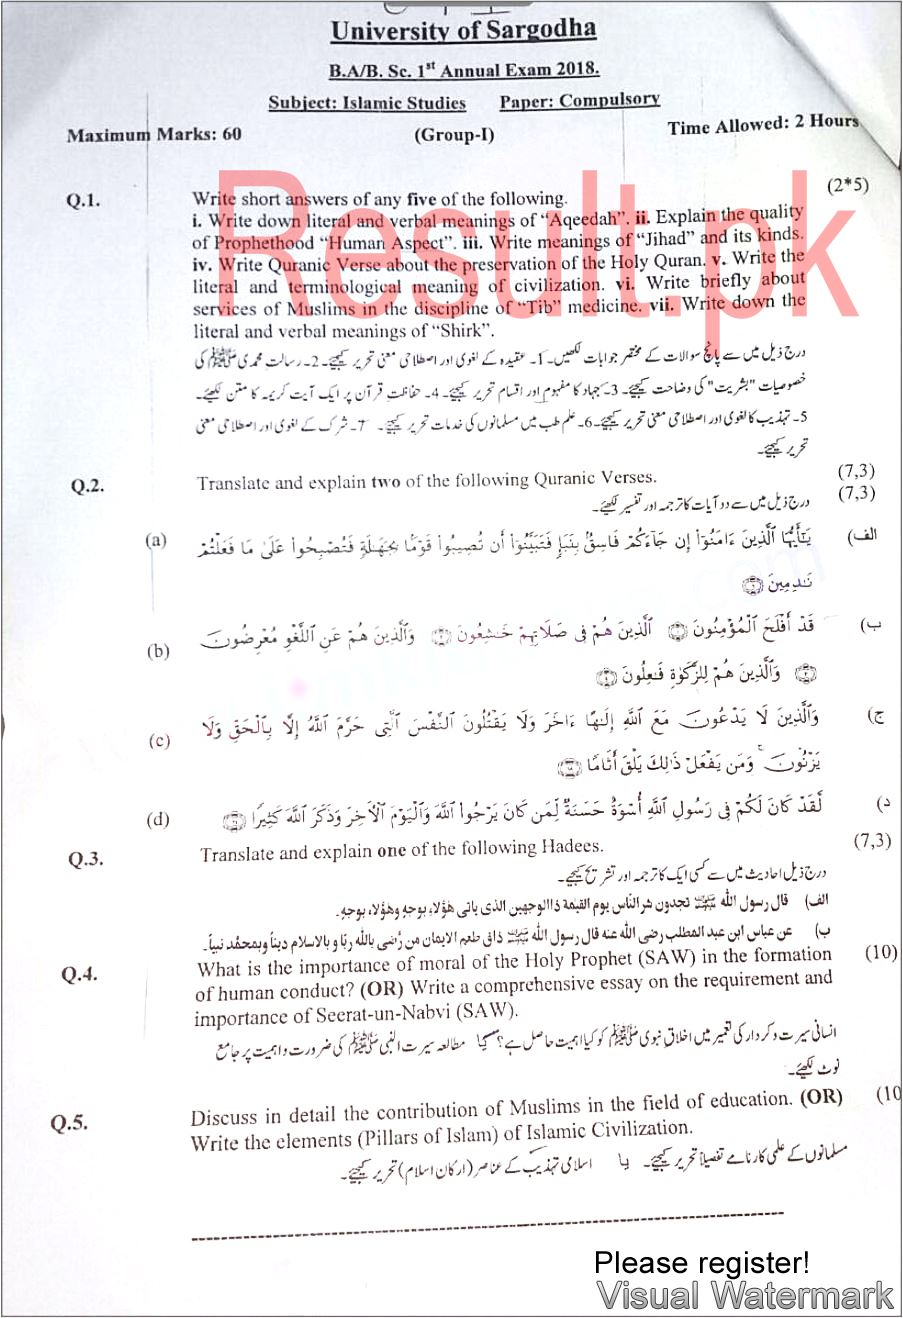 012 Research Paper Past Sargodha University Bsc Islamic Studies Subjective Group Educational Exam Amazing Papers Full